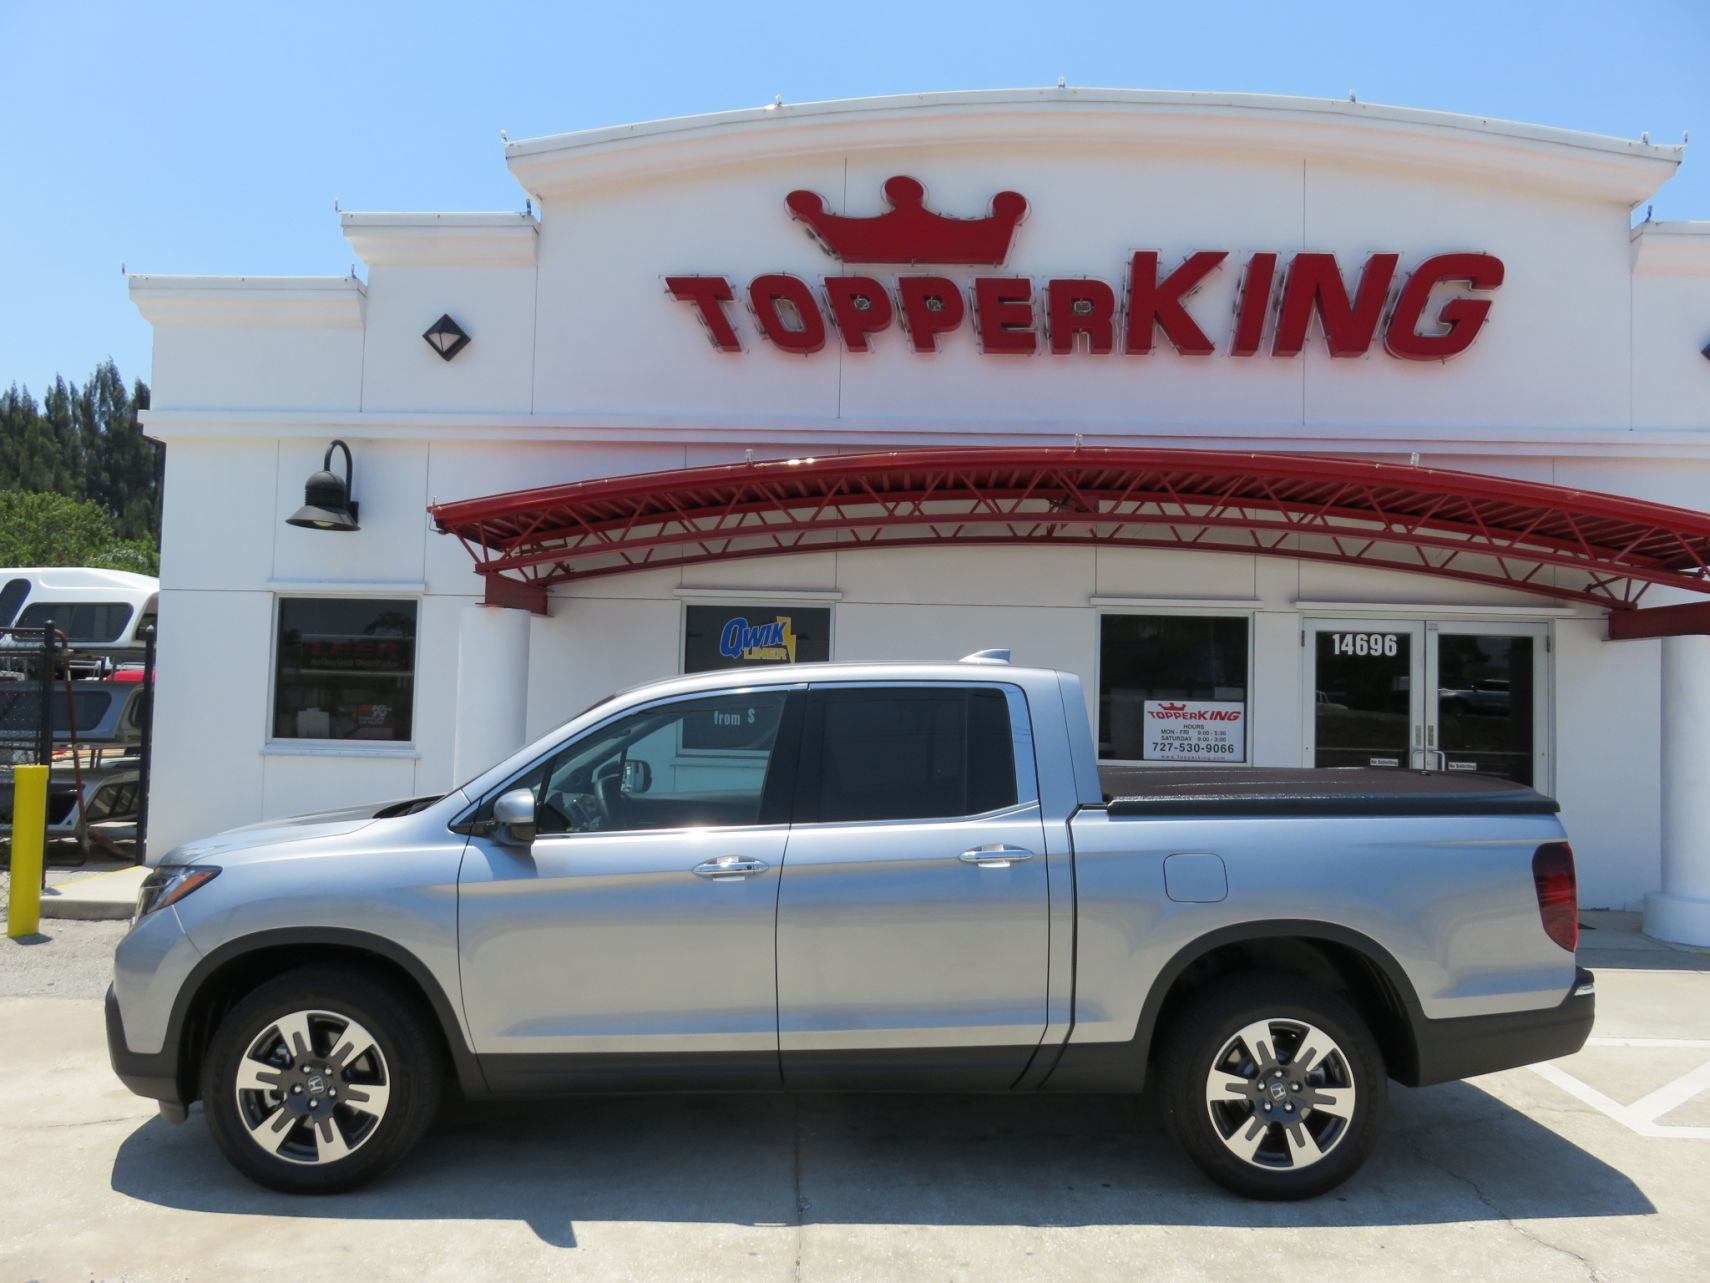 2019 Honda Ridgeline with Undercover Elite, Chrome Accents, Tint, Hitch. Call TopperKING Brandon 813-689-2449 or Clearwater FL 727-530-9066.